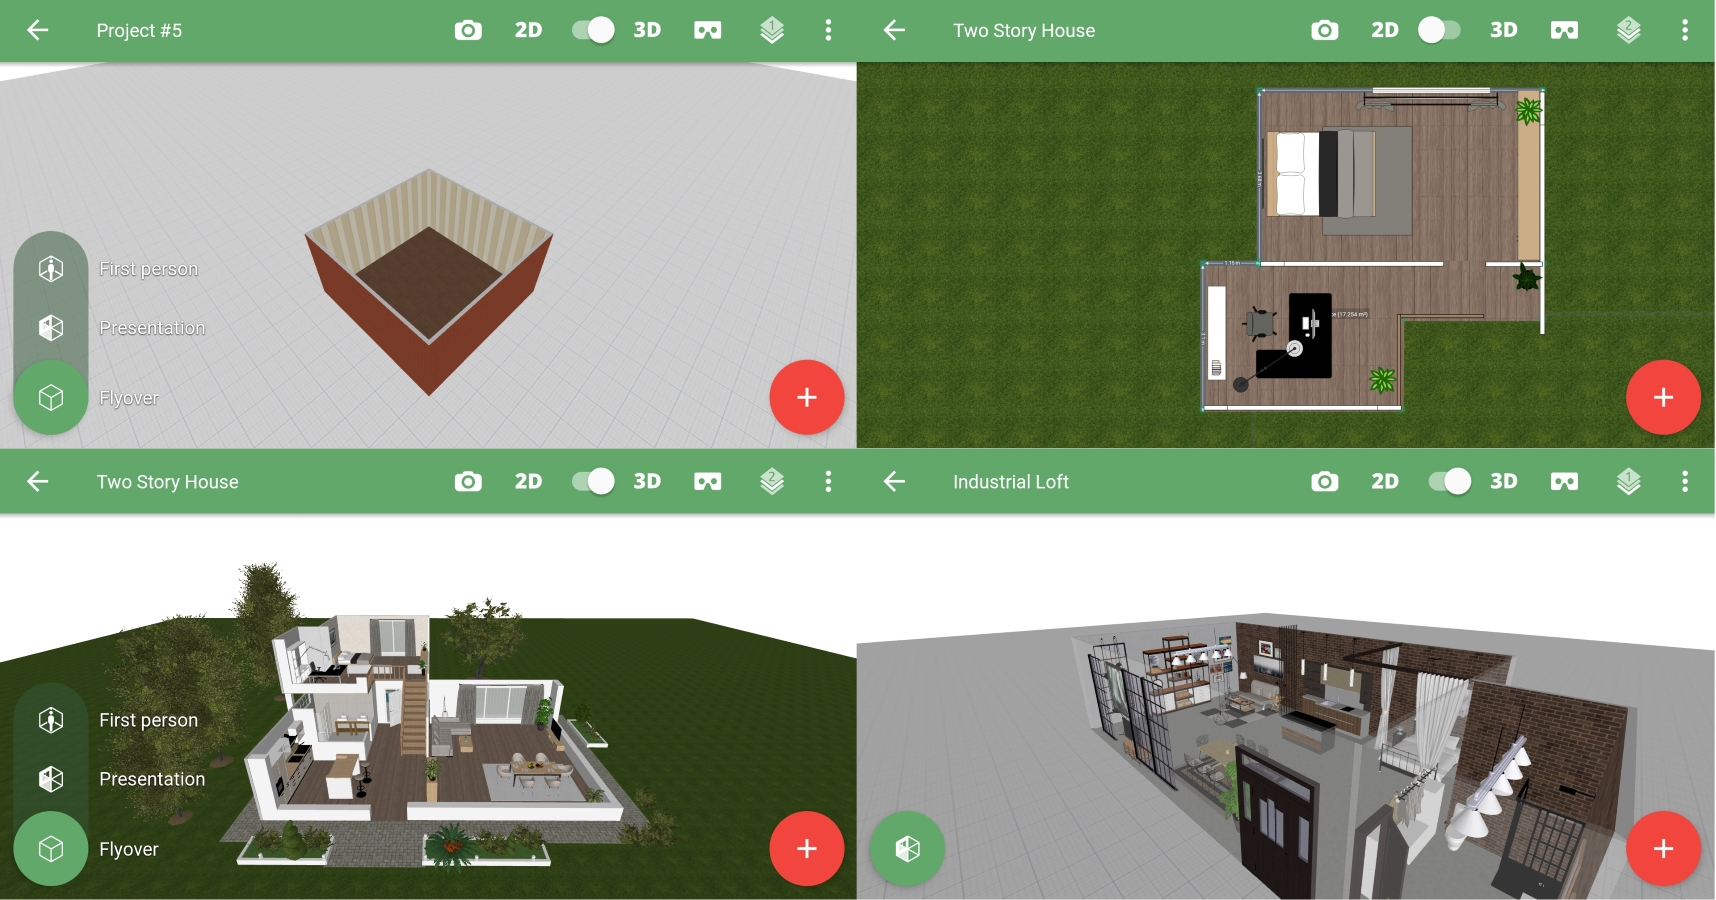 The 10 Best Home Design Apps for Android, iPhone and iPad ... House Floor Plan App Android on magicplan for android, floor plan app mac, kindle app for android, walkie talkie app android, floor plan app windows, home app android, construction apps for android,